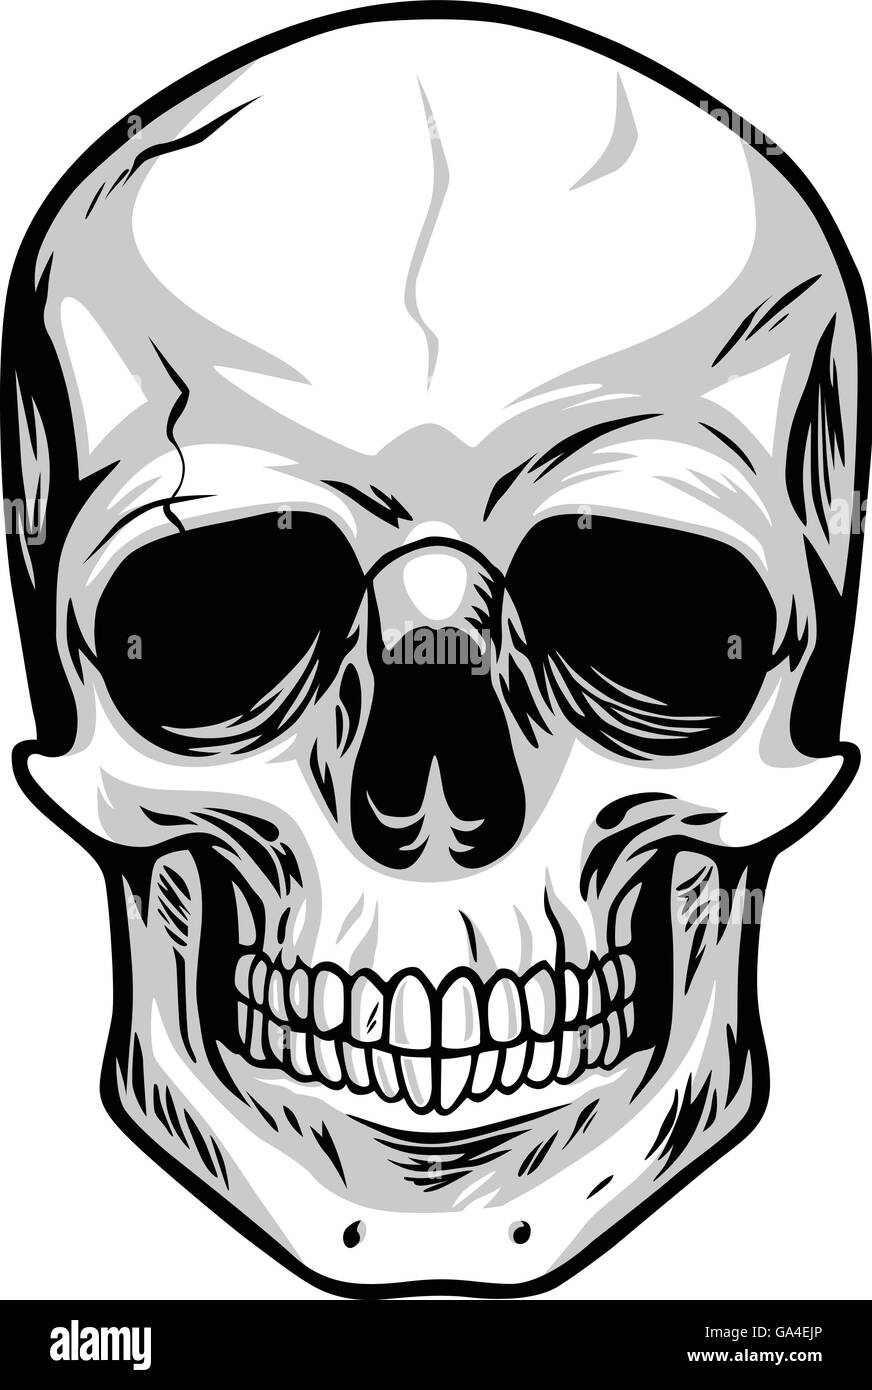 skull vector art illustrations stock vector art illustration rh alamy com skull vector free download skull vector free for commercial use